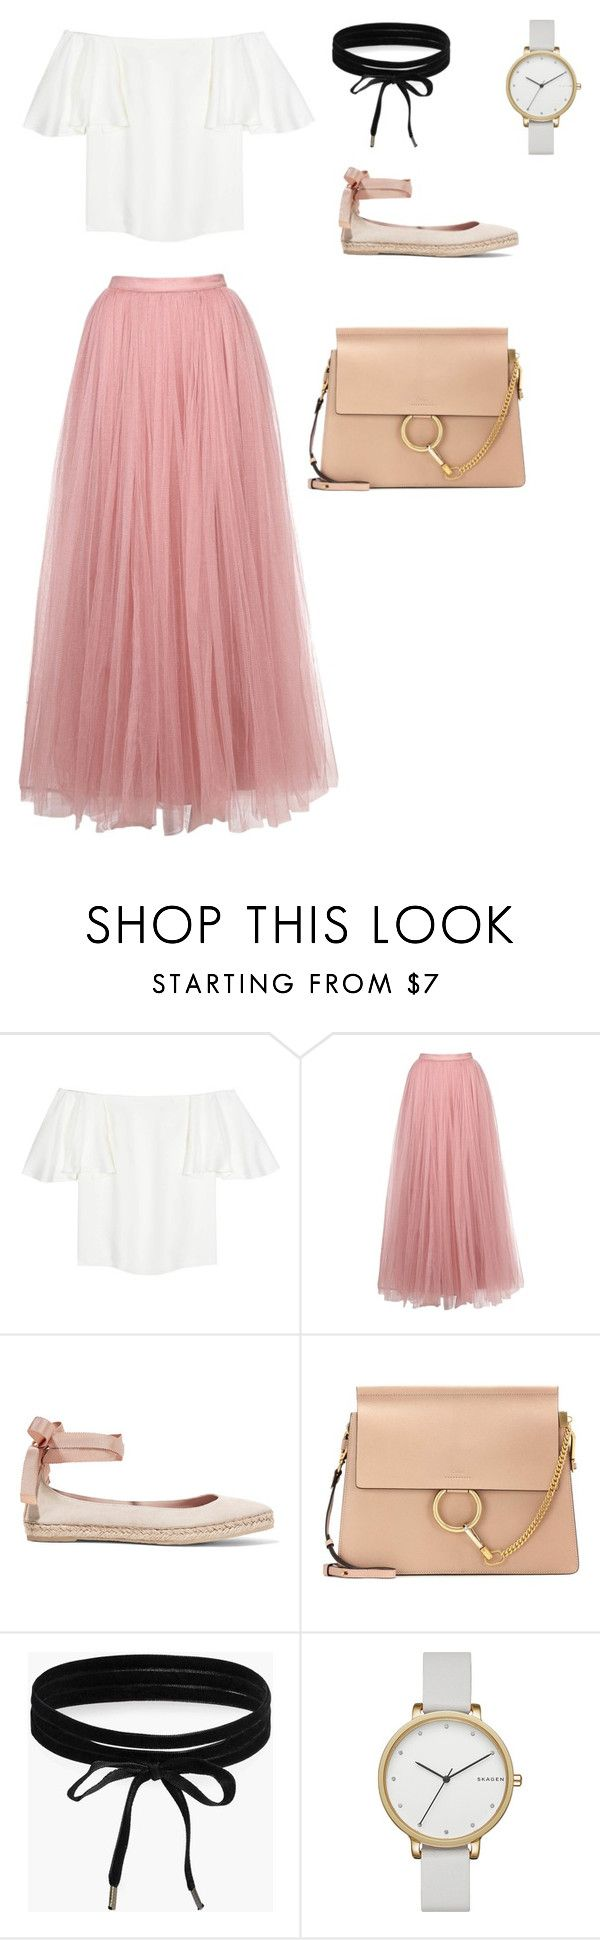 """""""Oh summer ! 💜"""" by joe-khulan on Polyvore featuring Valentino, Little Mistress, AERIN, Chloé, Boohoo and Skagen"""